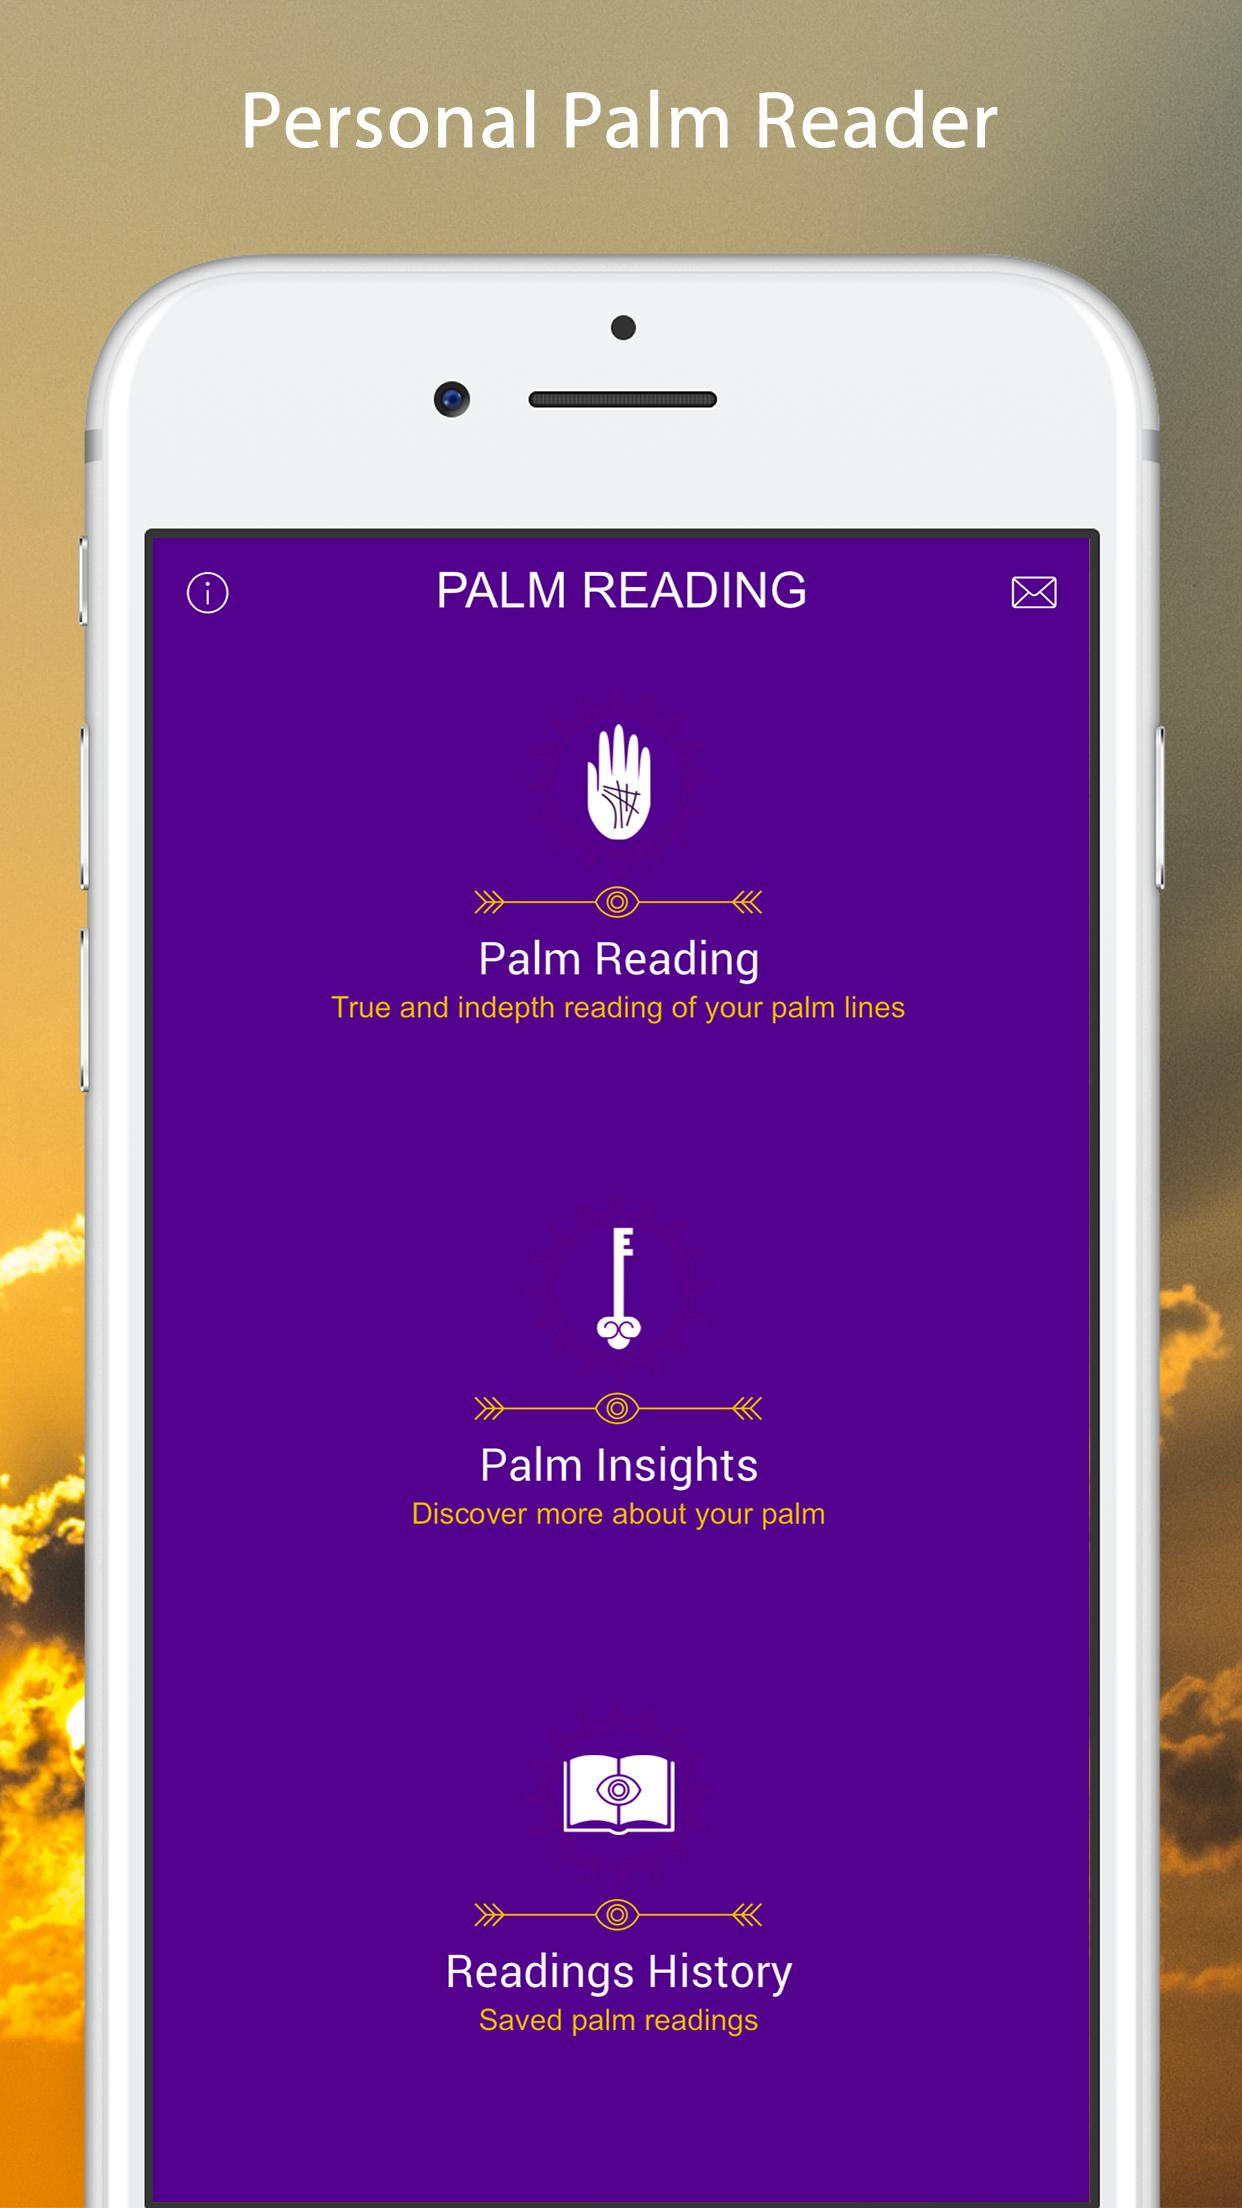 Palm Reading Insights -- Palmistry Palm Reader App for Android - APK